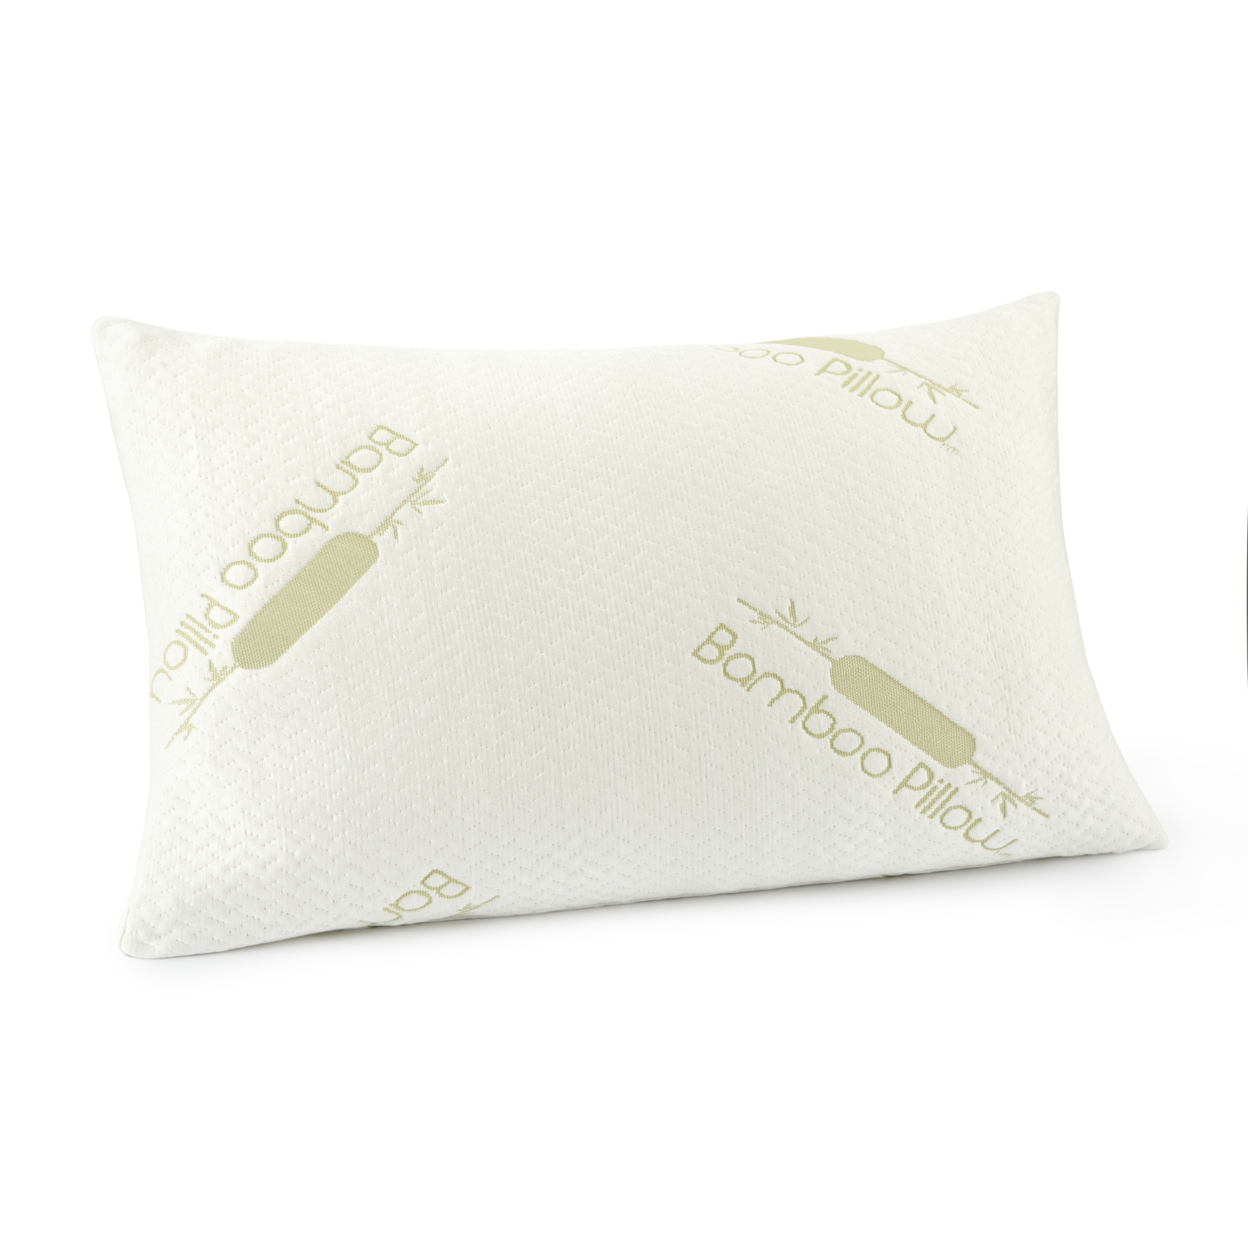 Michael Anthony Memory Foam Pillow- Standard